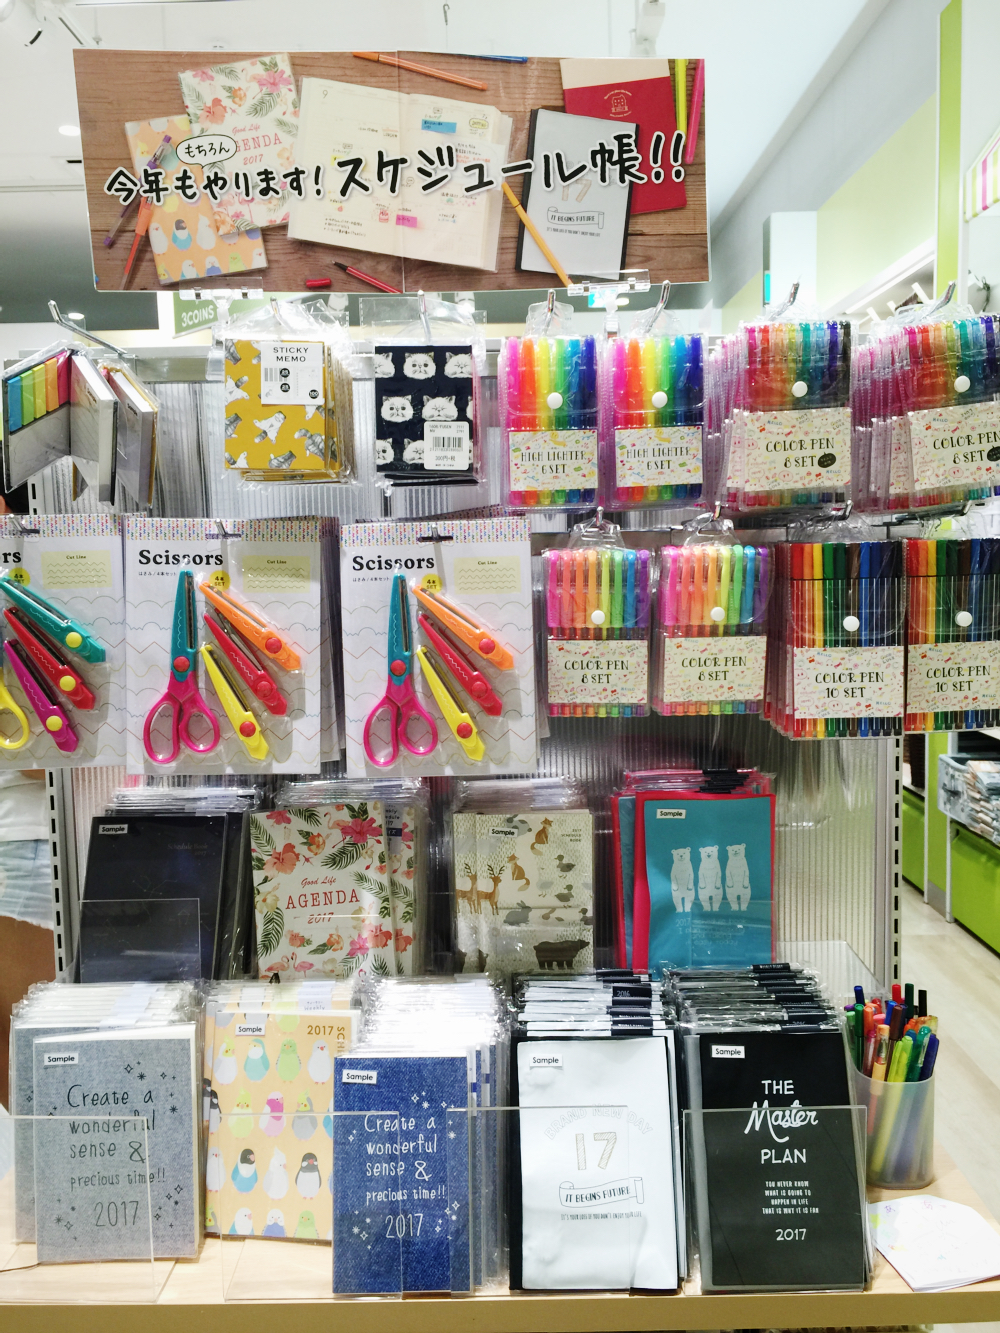 kawaii-japanese-tokyo-stationery-craft-store-guide-54